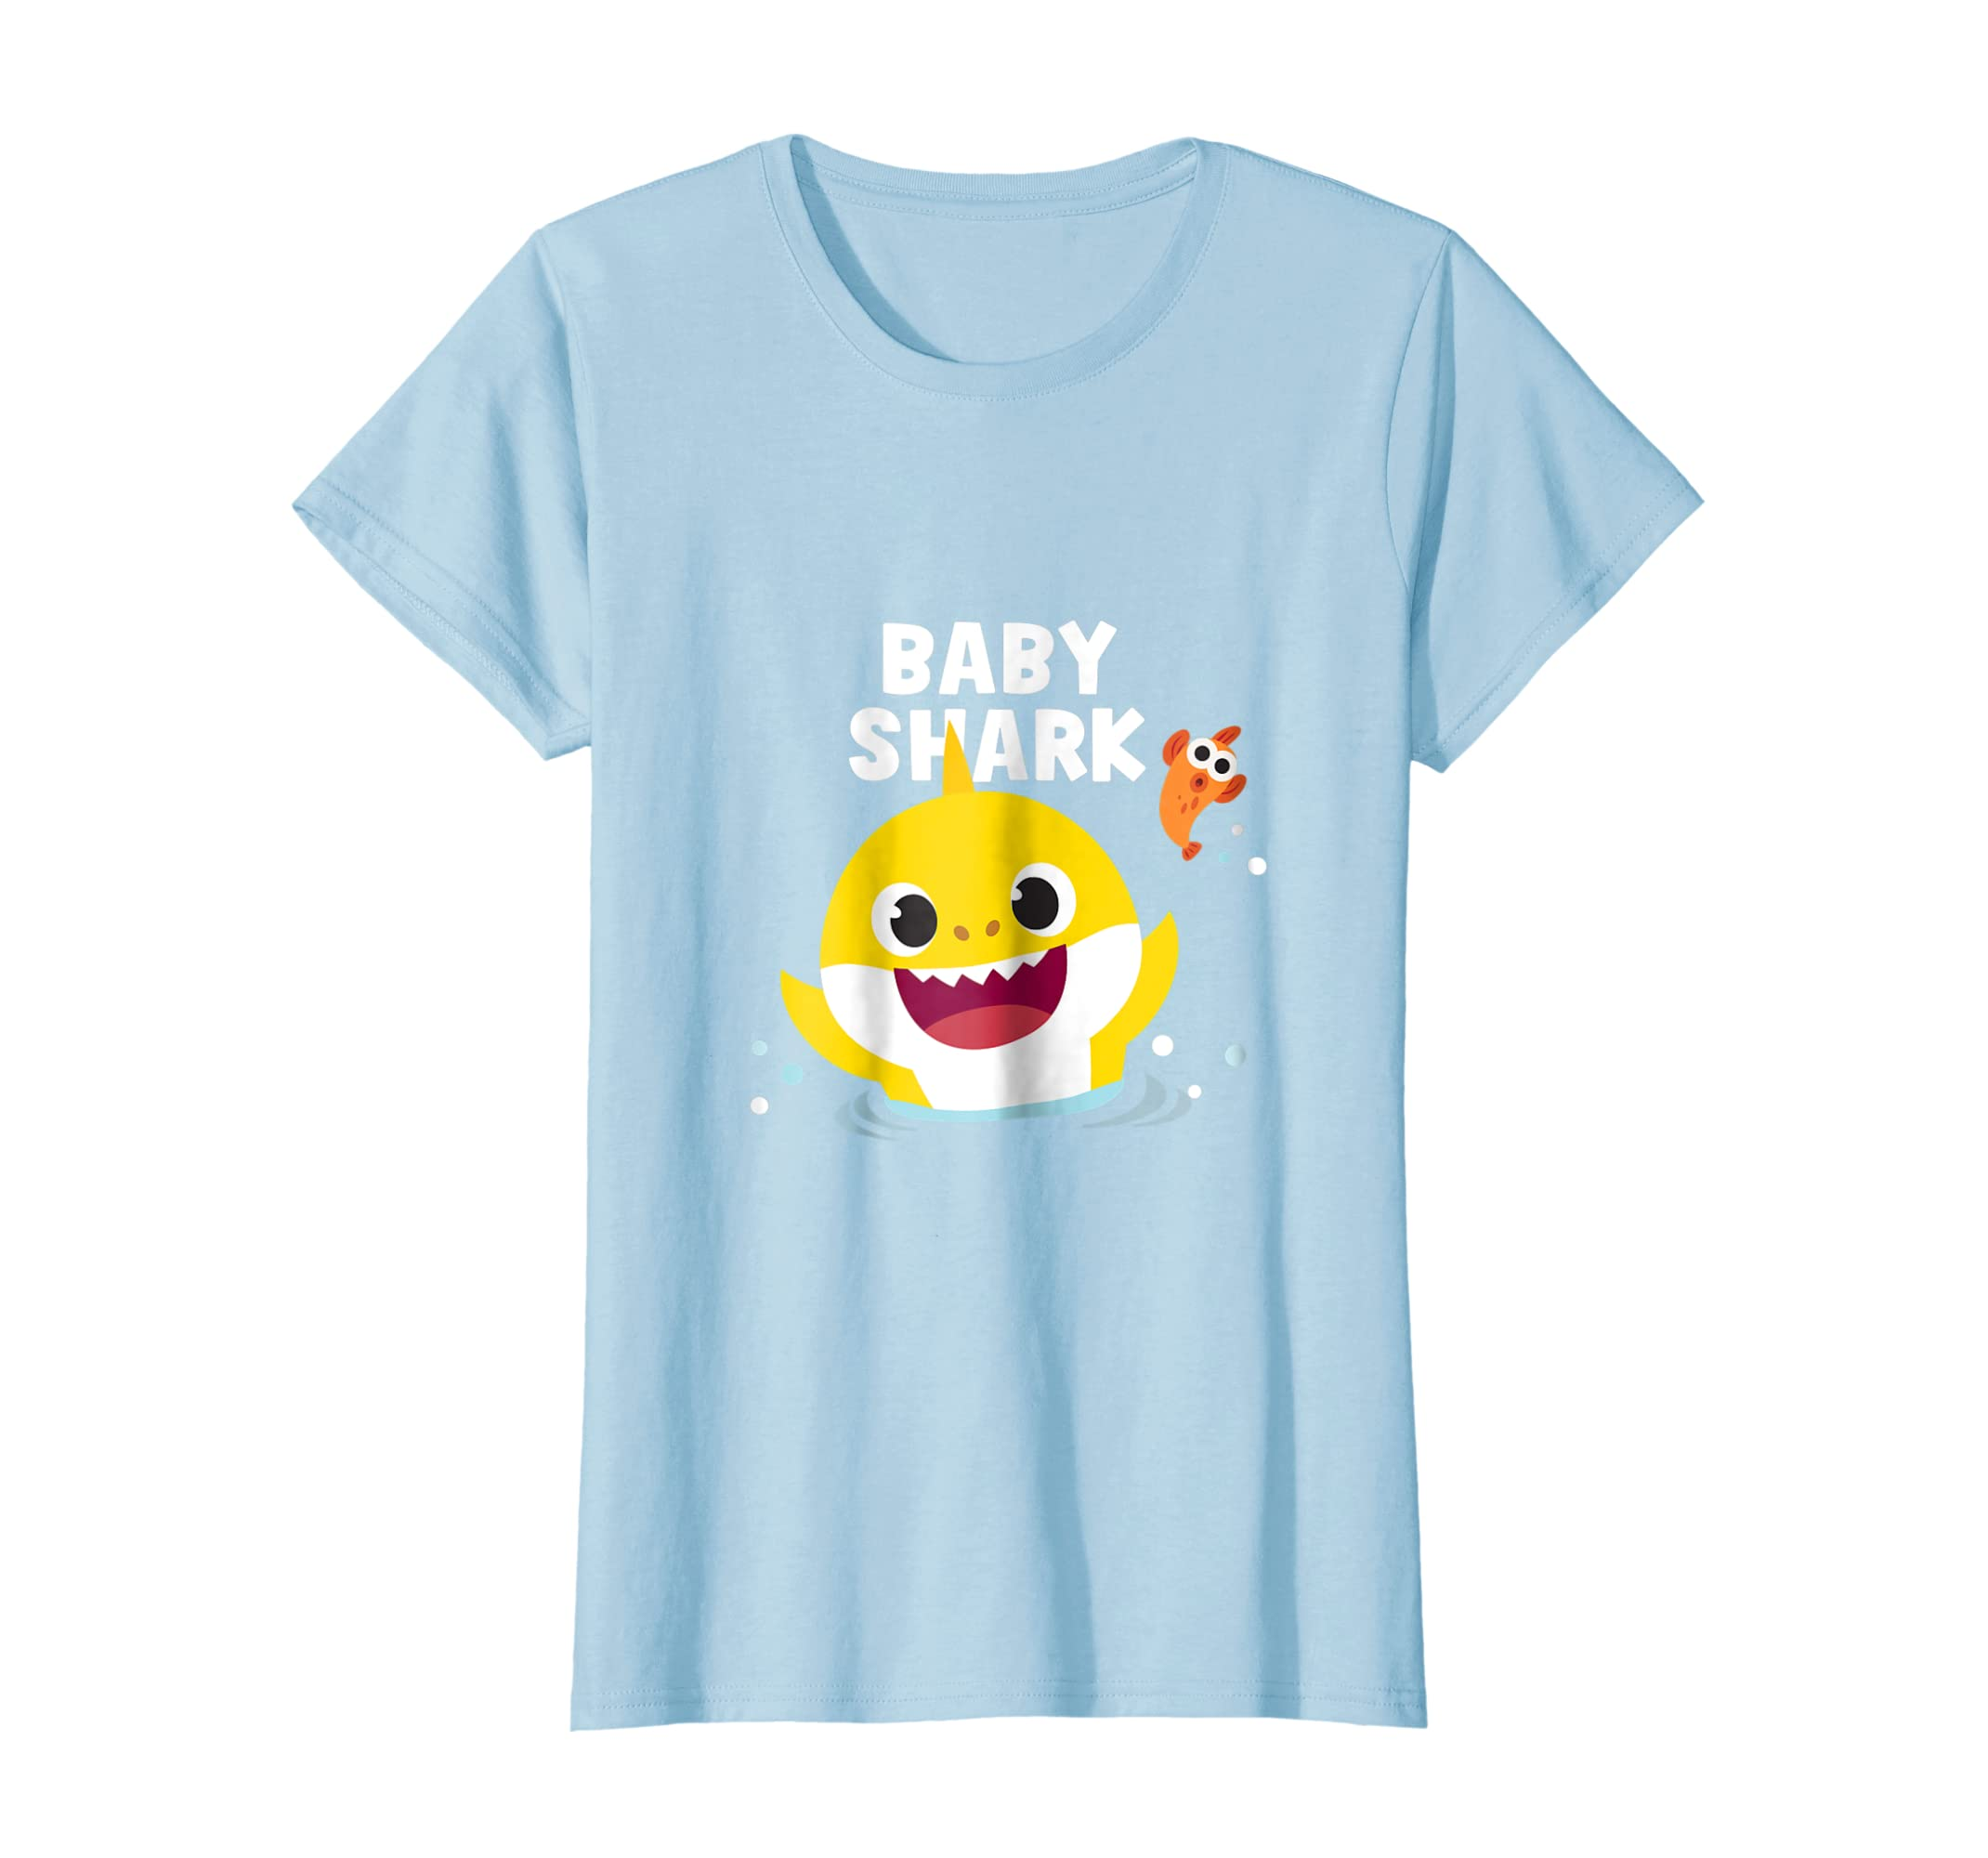 c4206168 Amazon.com: Pinkfong Baby Shark t-shirt with text: Clothing